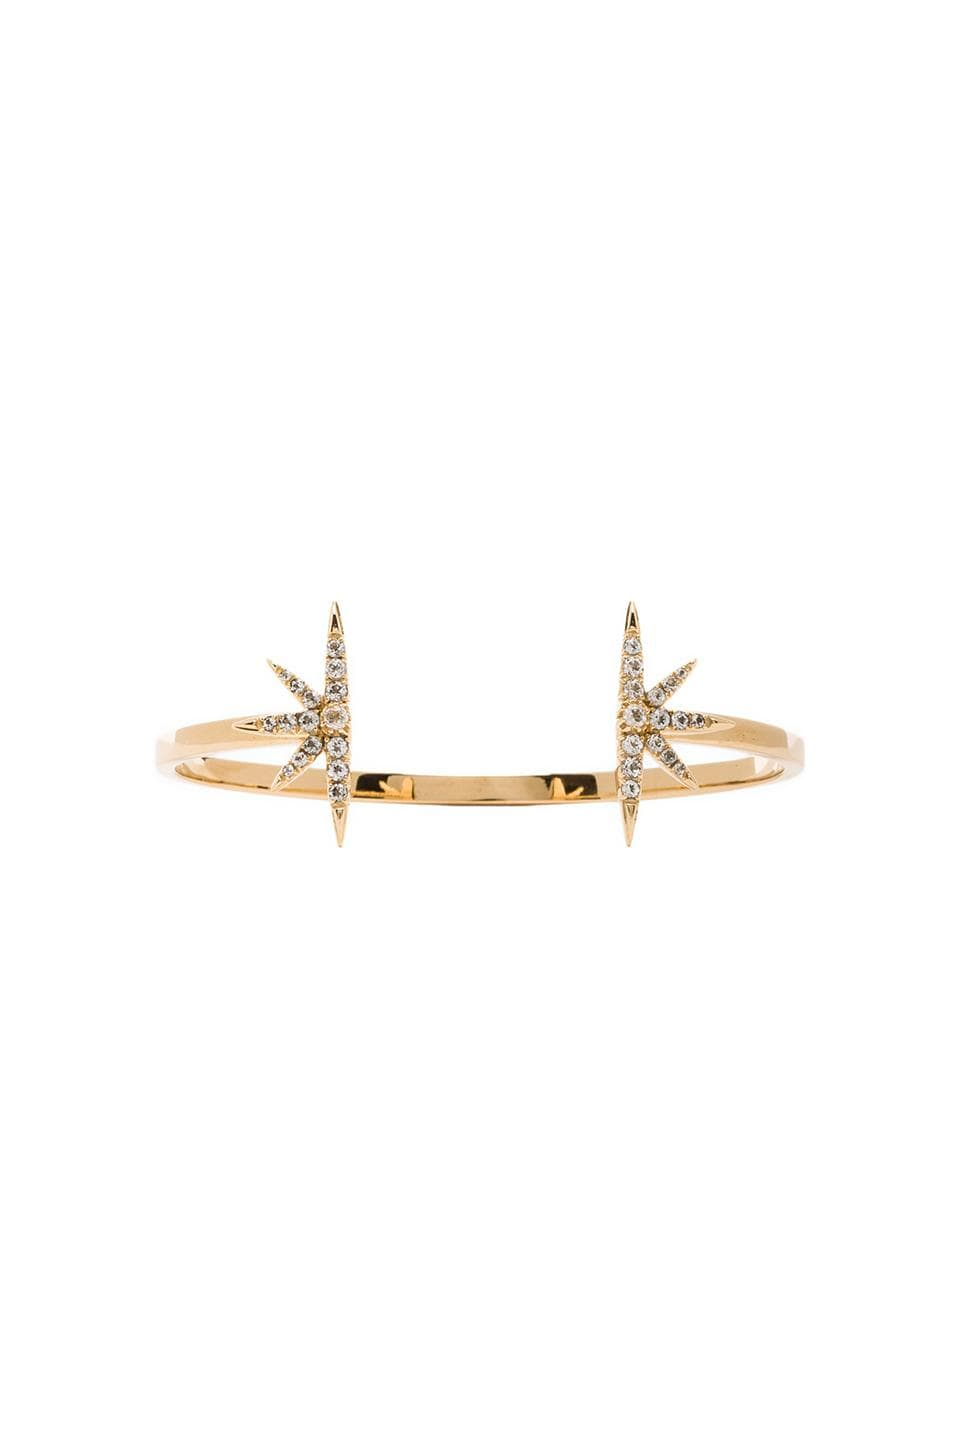 Elizabeth and James Celestial Bangle with White Topaz in Gold